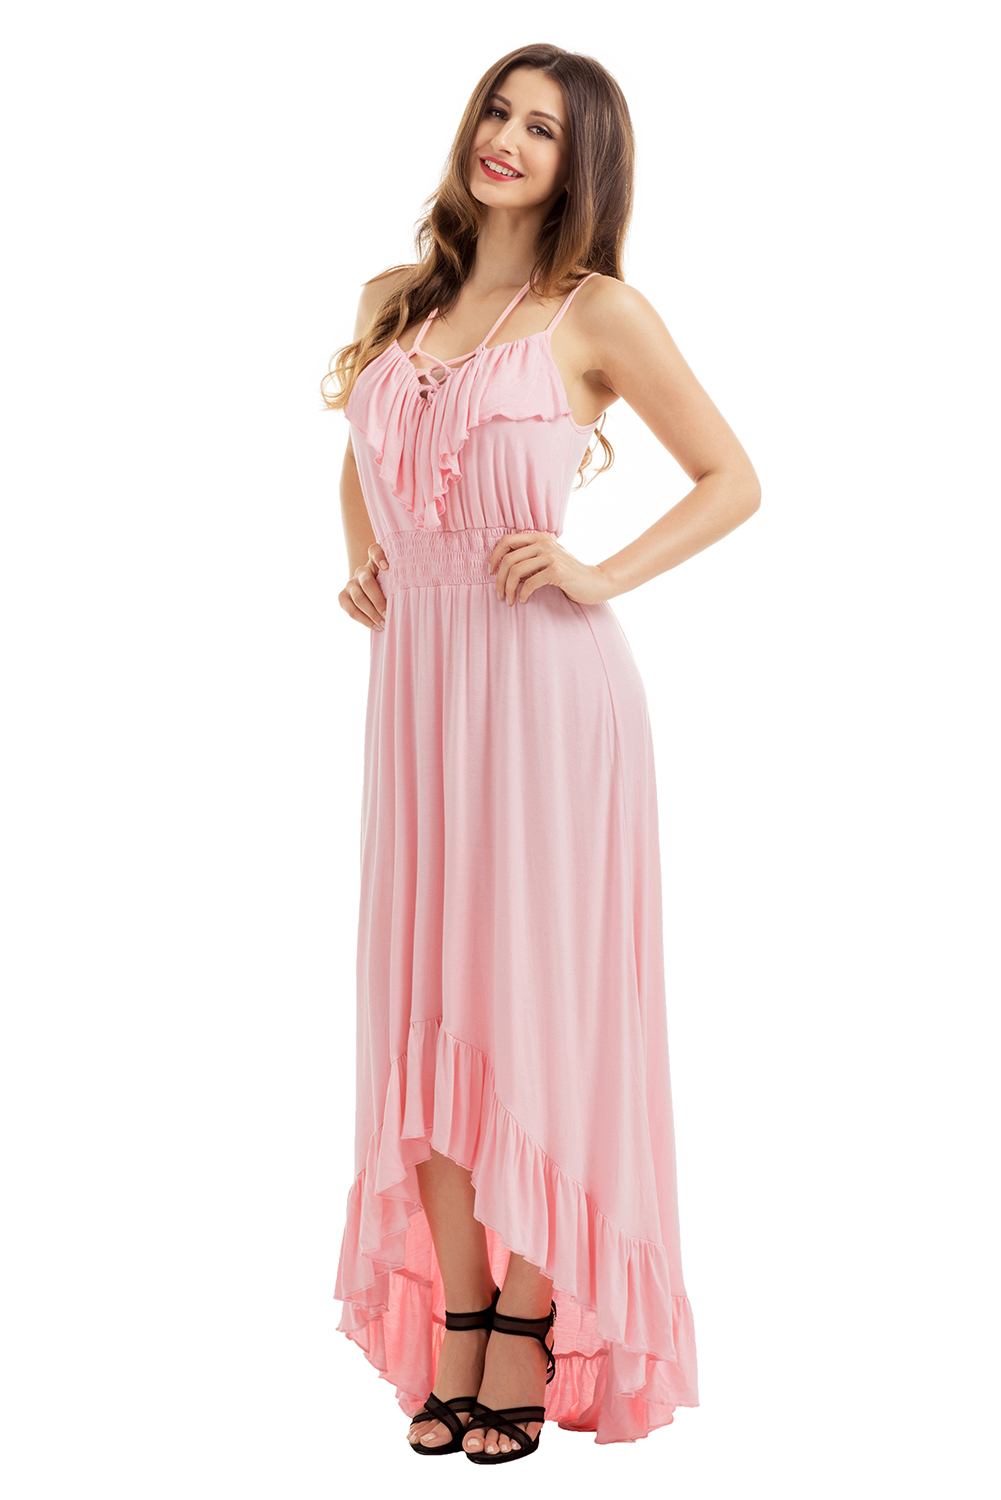 Lace-up-v-neck-ruffle-hi-low-maxi-  sc 1 st  eBay : light pink high low dress - www.canuckmediamonitor.org